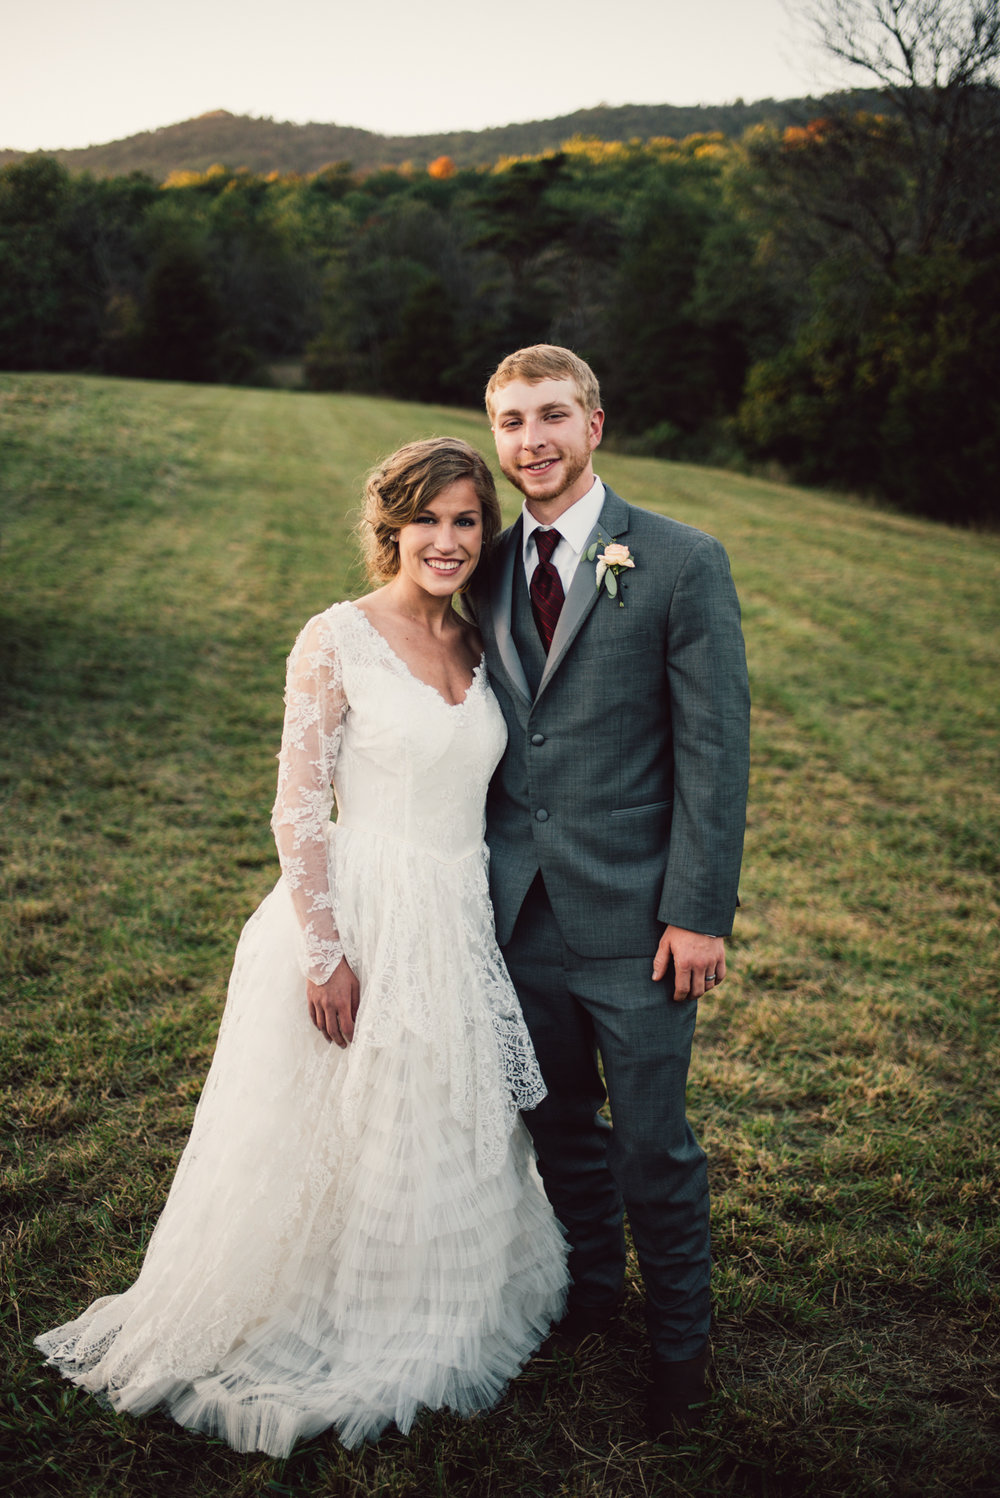 Ashley-and-Michael-Beaune-Woodstock-Virginia-Wedding-Shenandoah-Valley_46.JPG